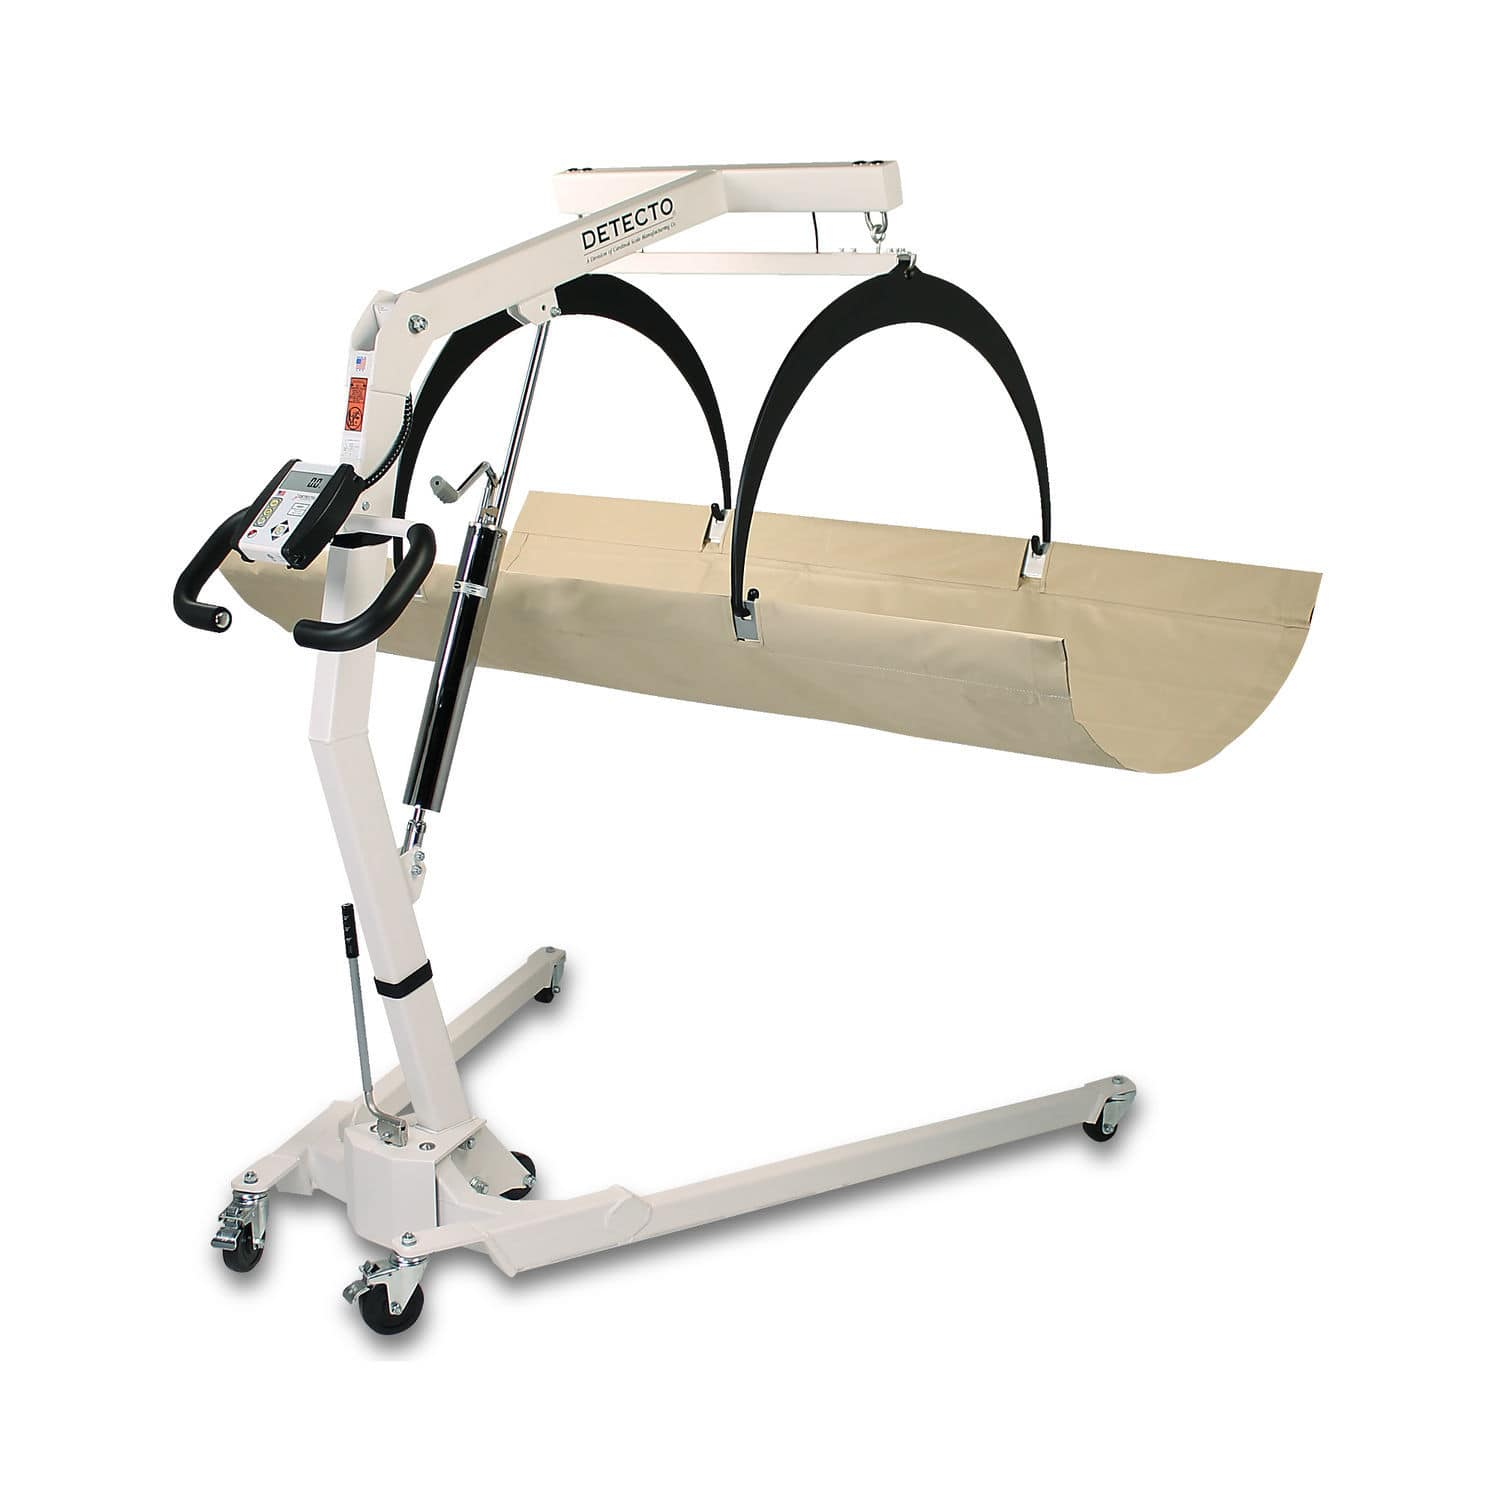 electronic patient scales for patient lifts with digital display mobile ib800 - Detecto Scales